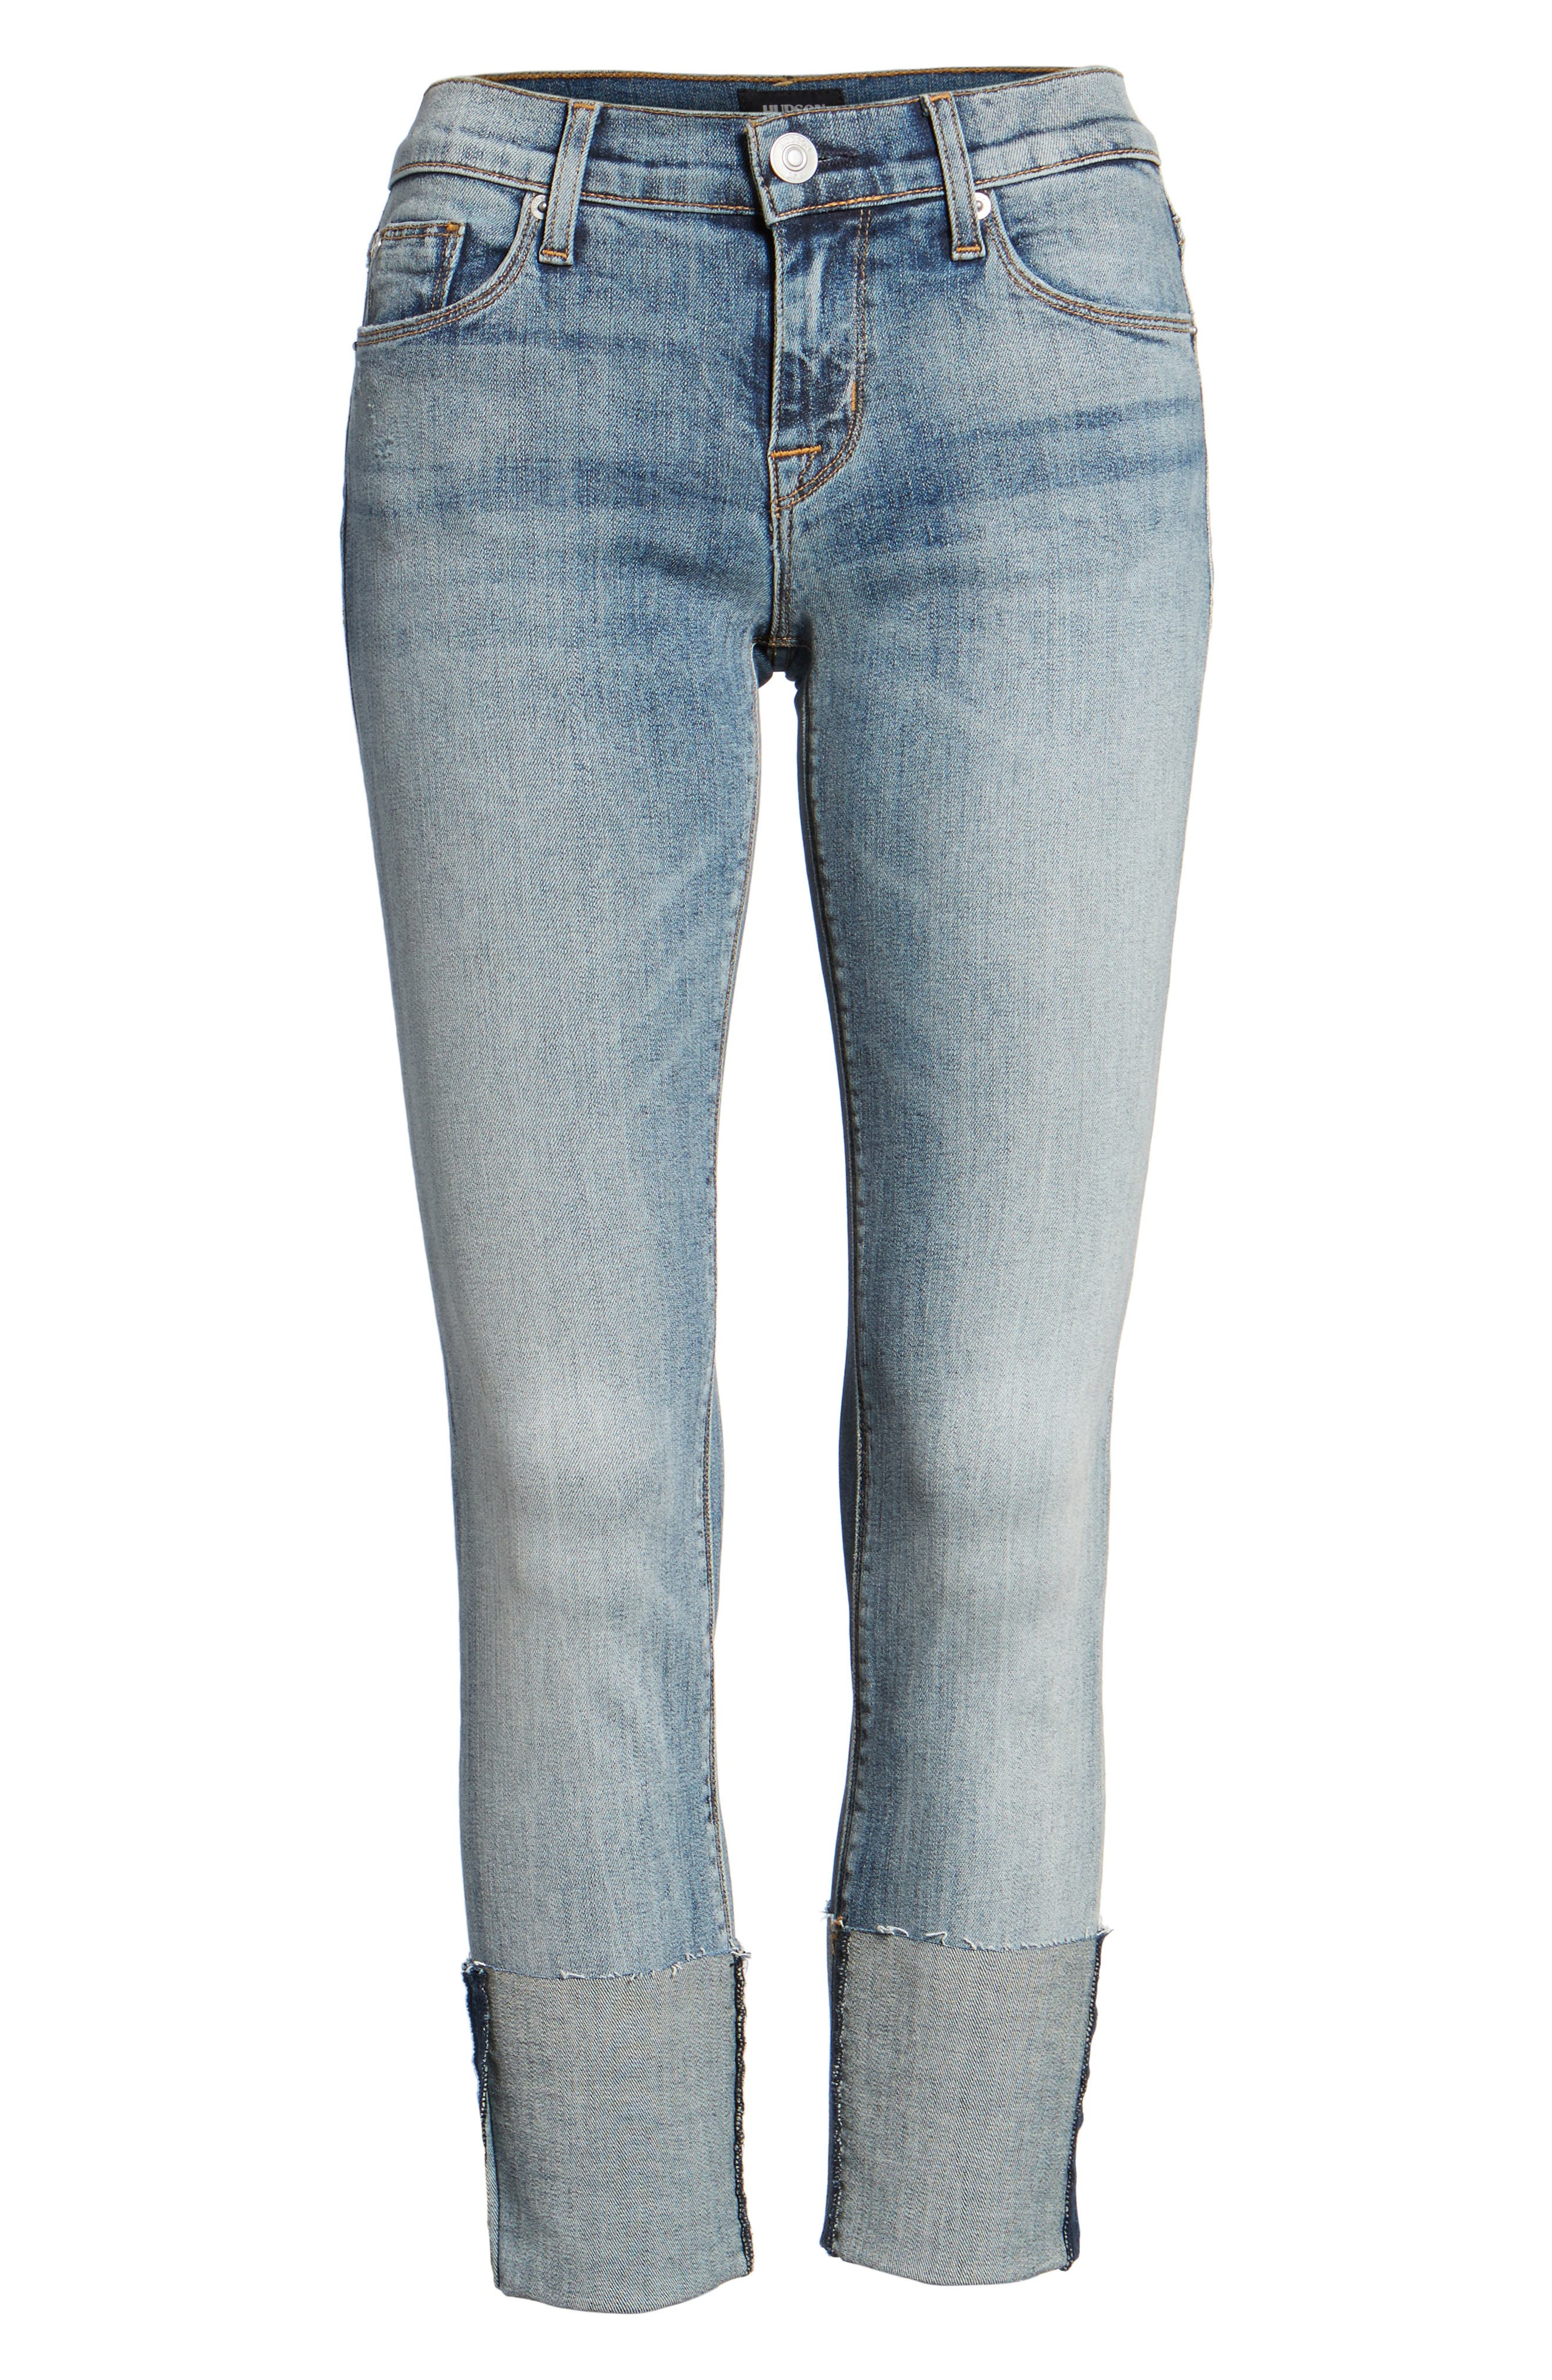 Tally Cuffed Crop Skinny Jeans,                             Alternate thumbnail 18, color,